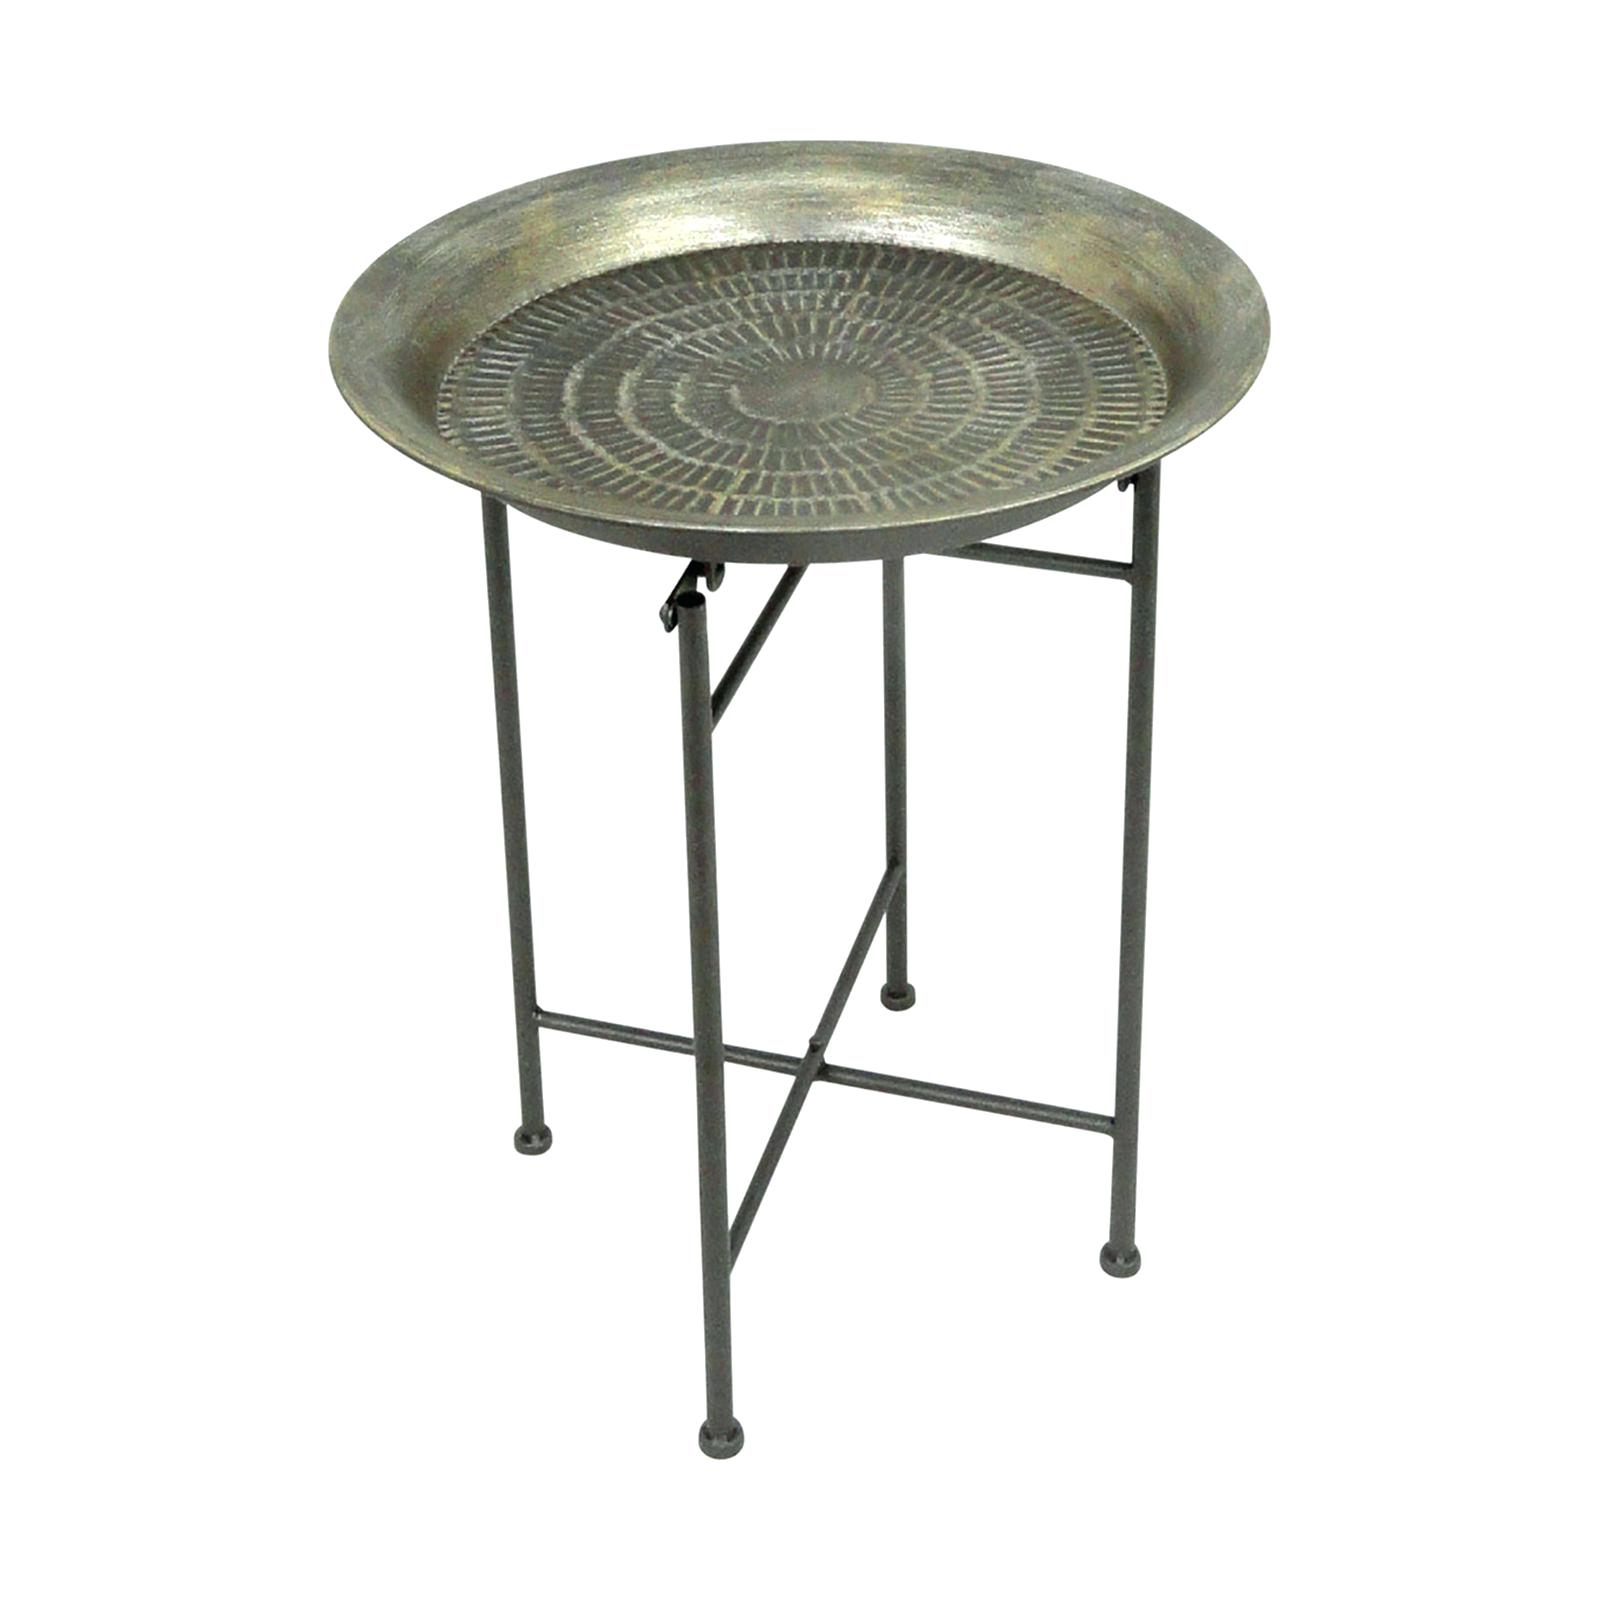 round metal accent table target threshold low contemporary coffee tables bella green mosaic outdoor bronze frog wall design sofa with matching end oval patio cover marble plant